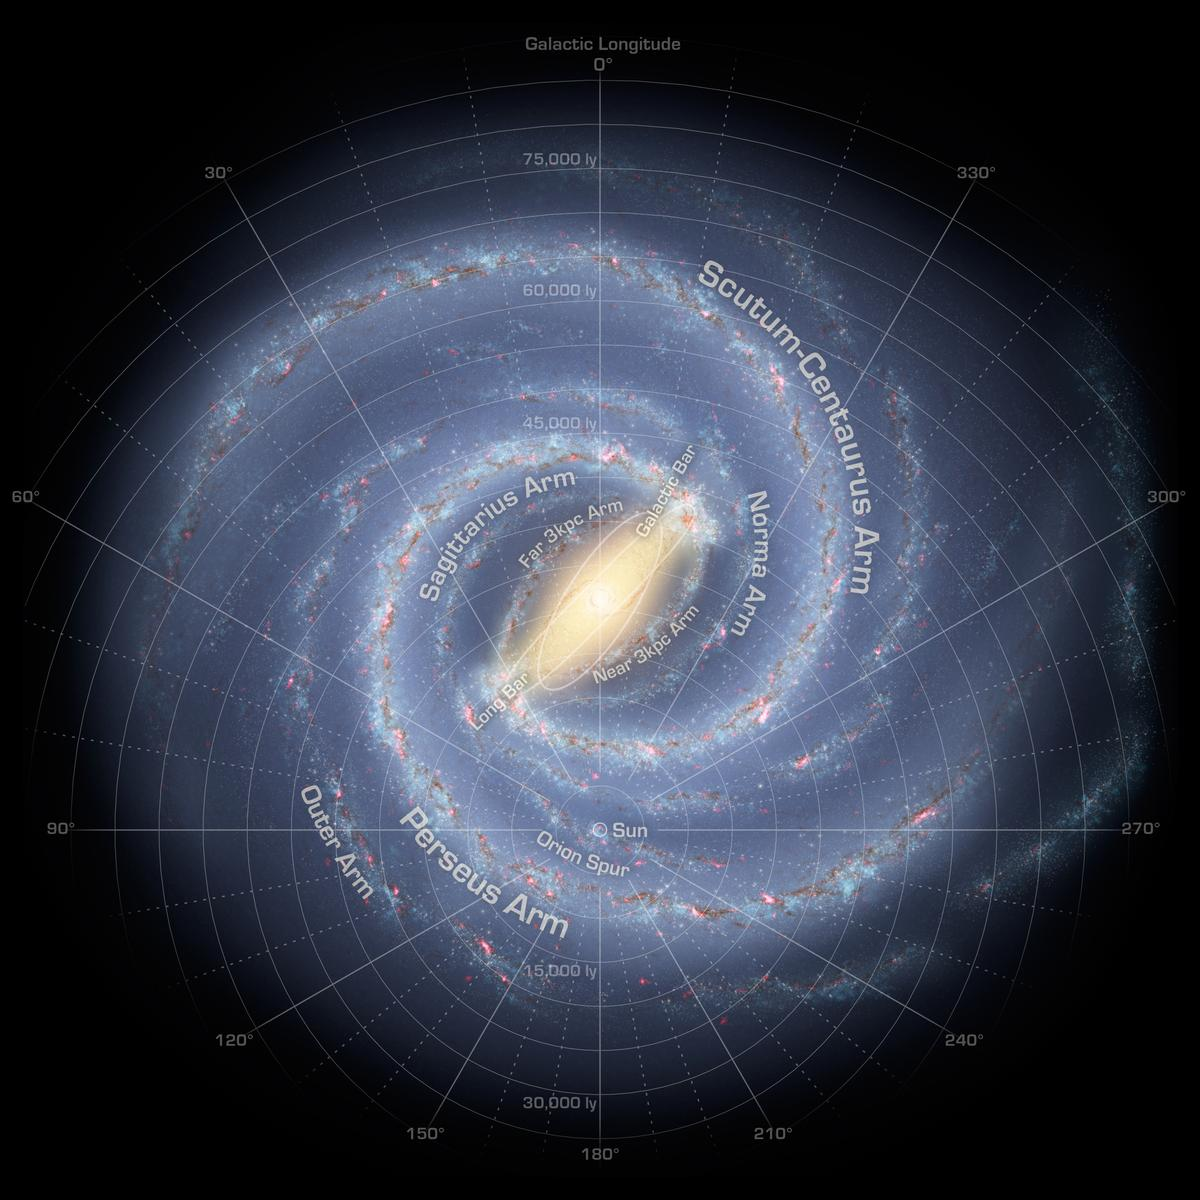 NASA graphic showing the structure of the Milky Way